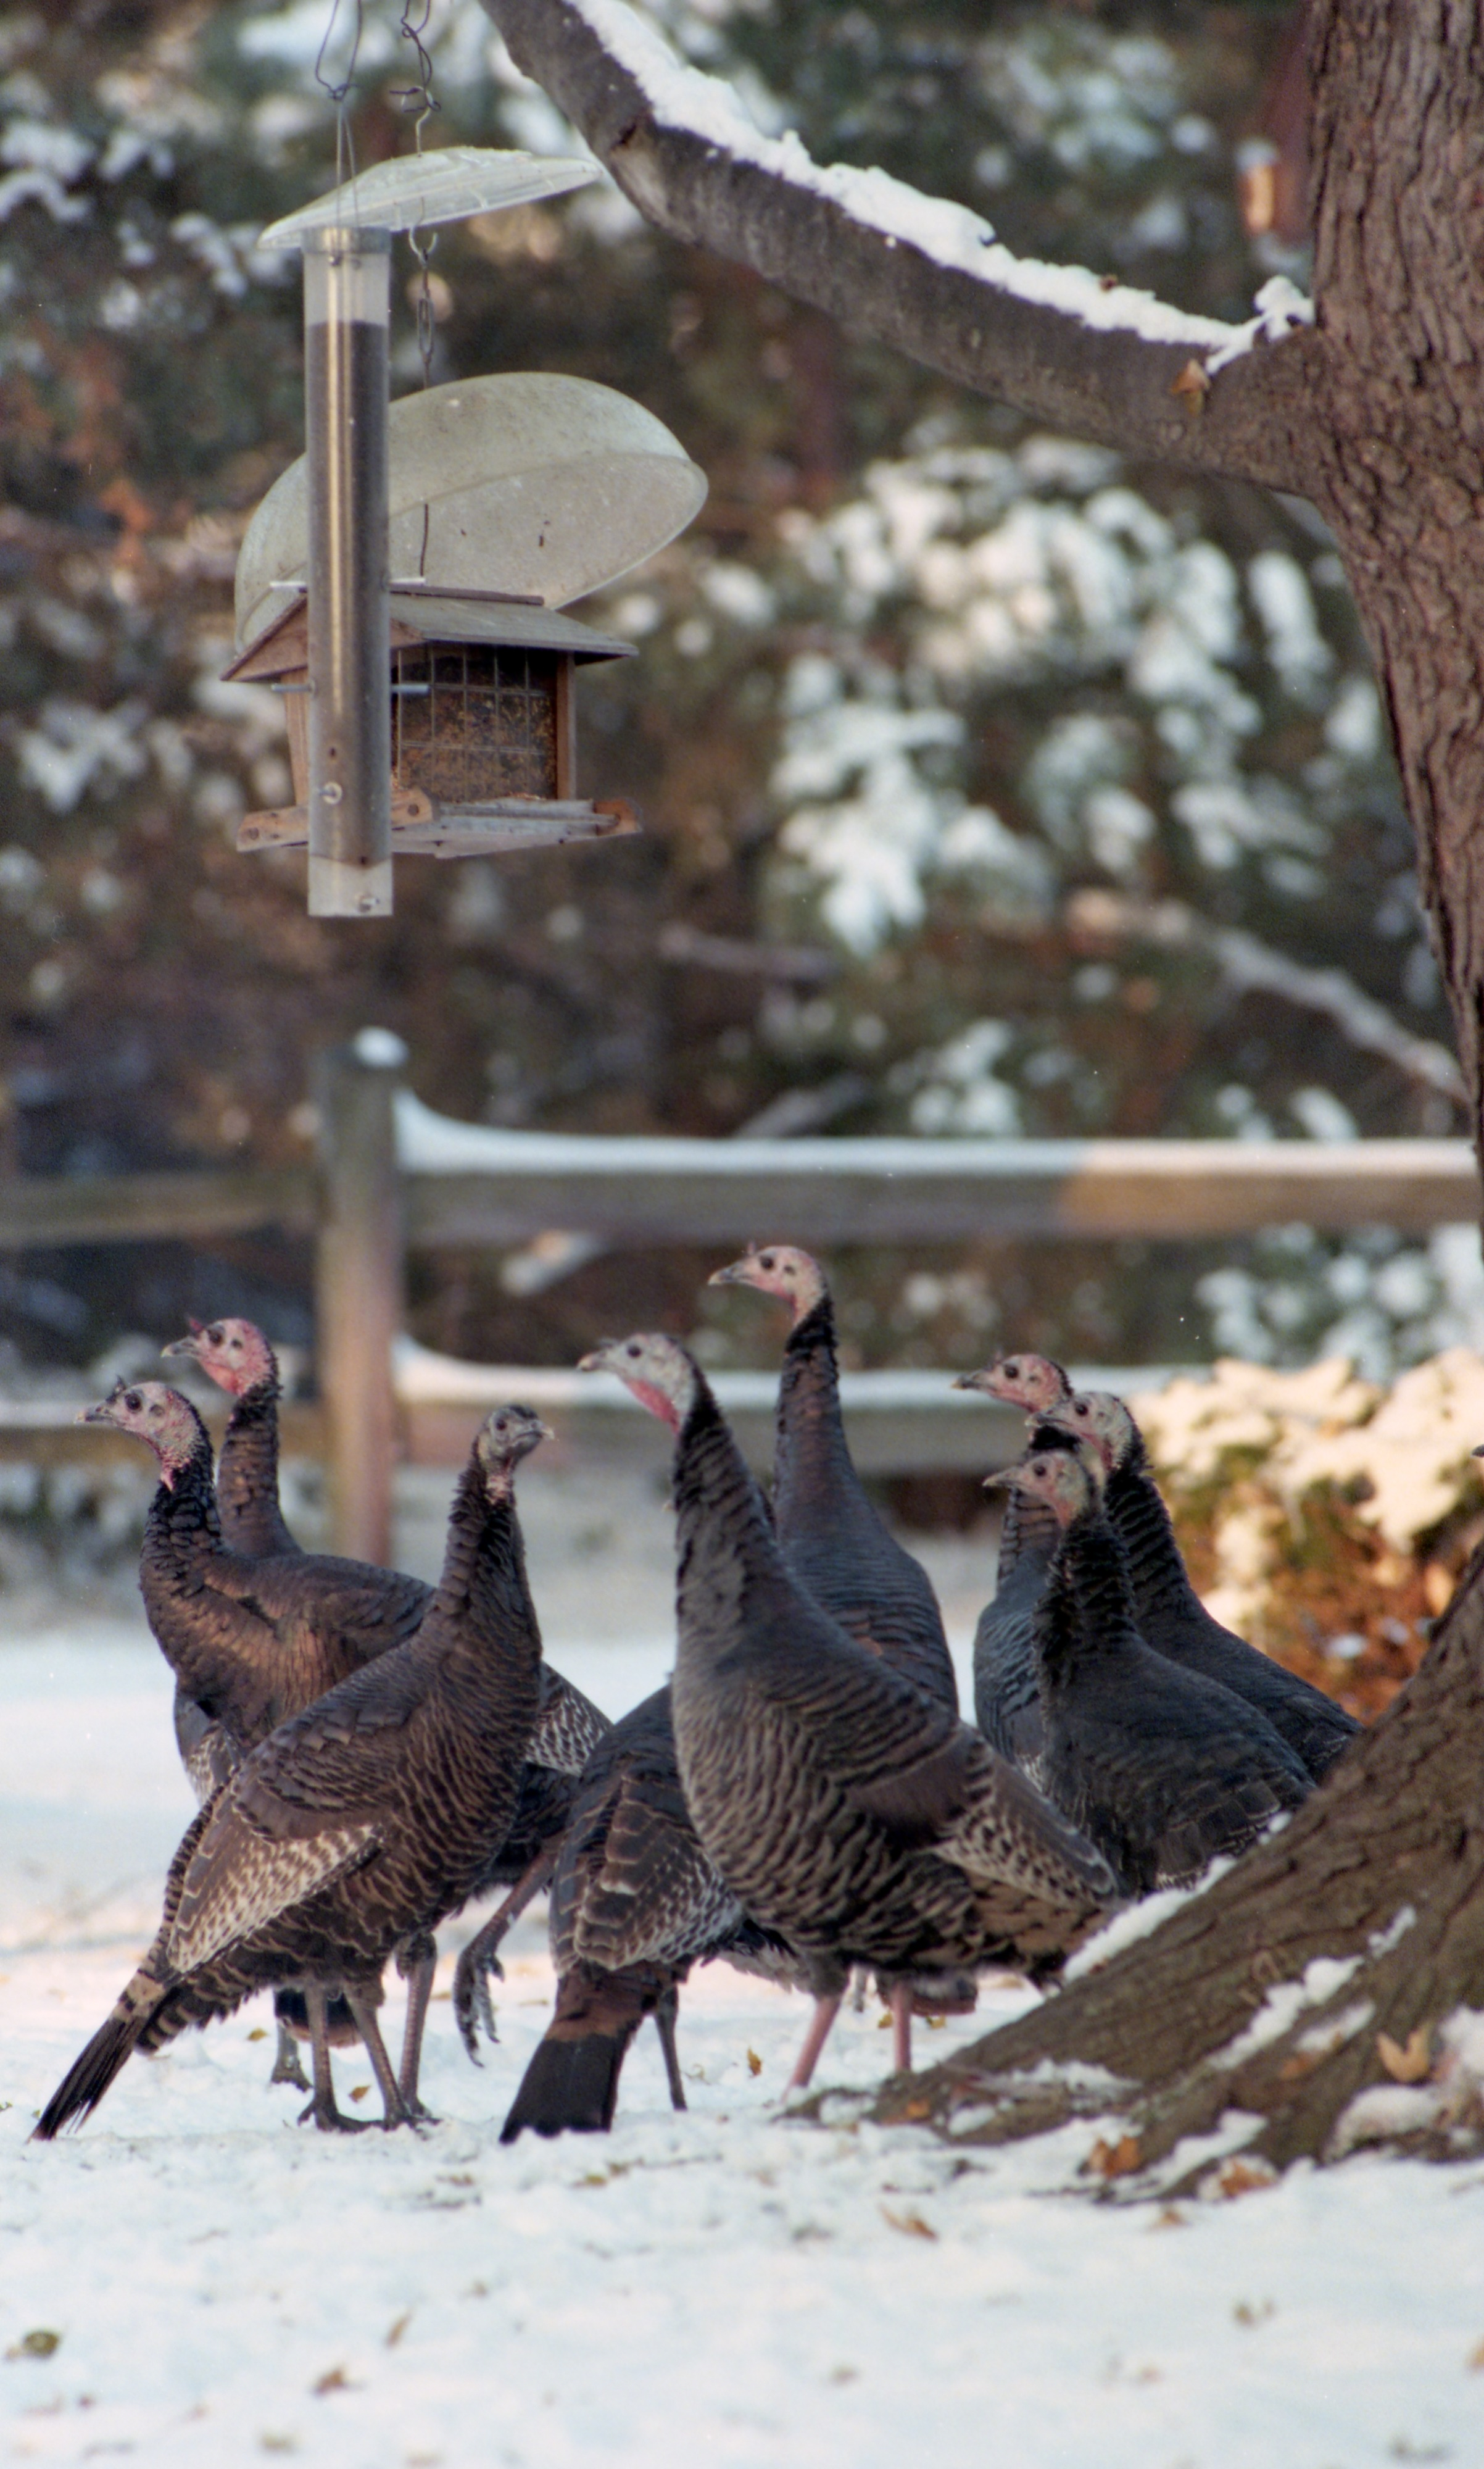 Wild Turkeys Outside The Howell Home Of Sue & Jay Krokosky, November 1997 image